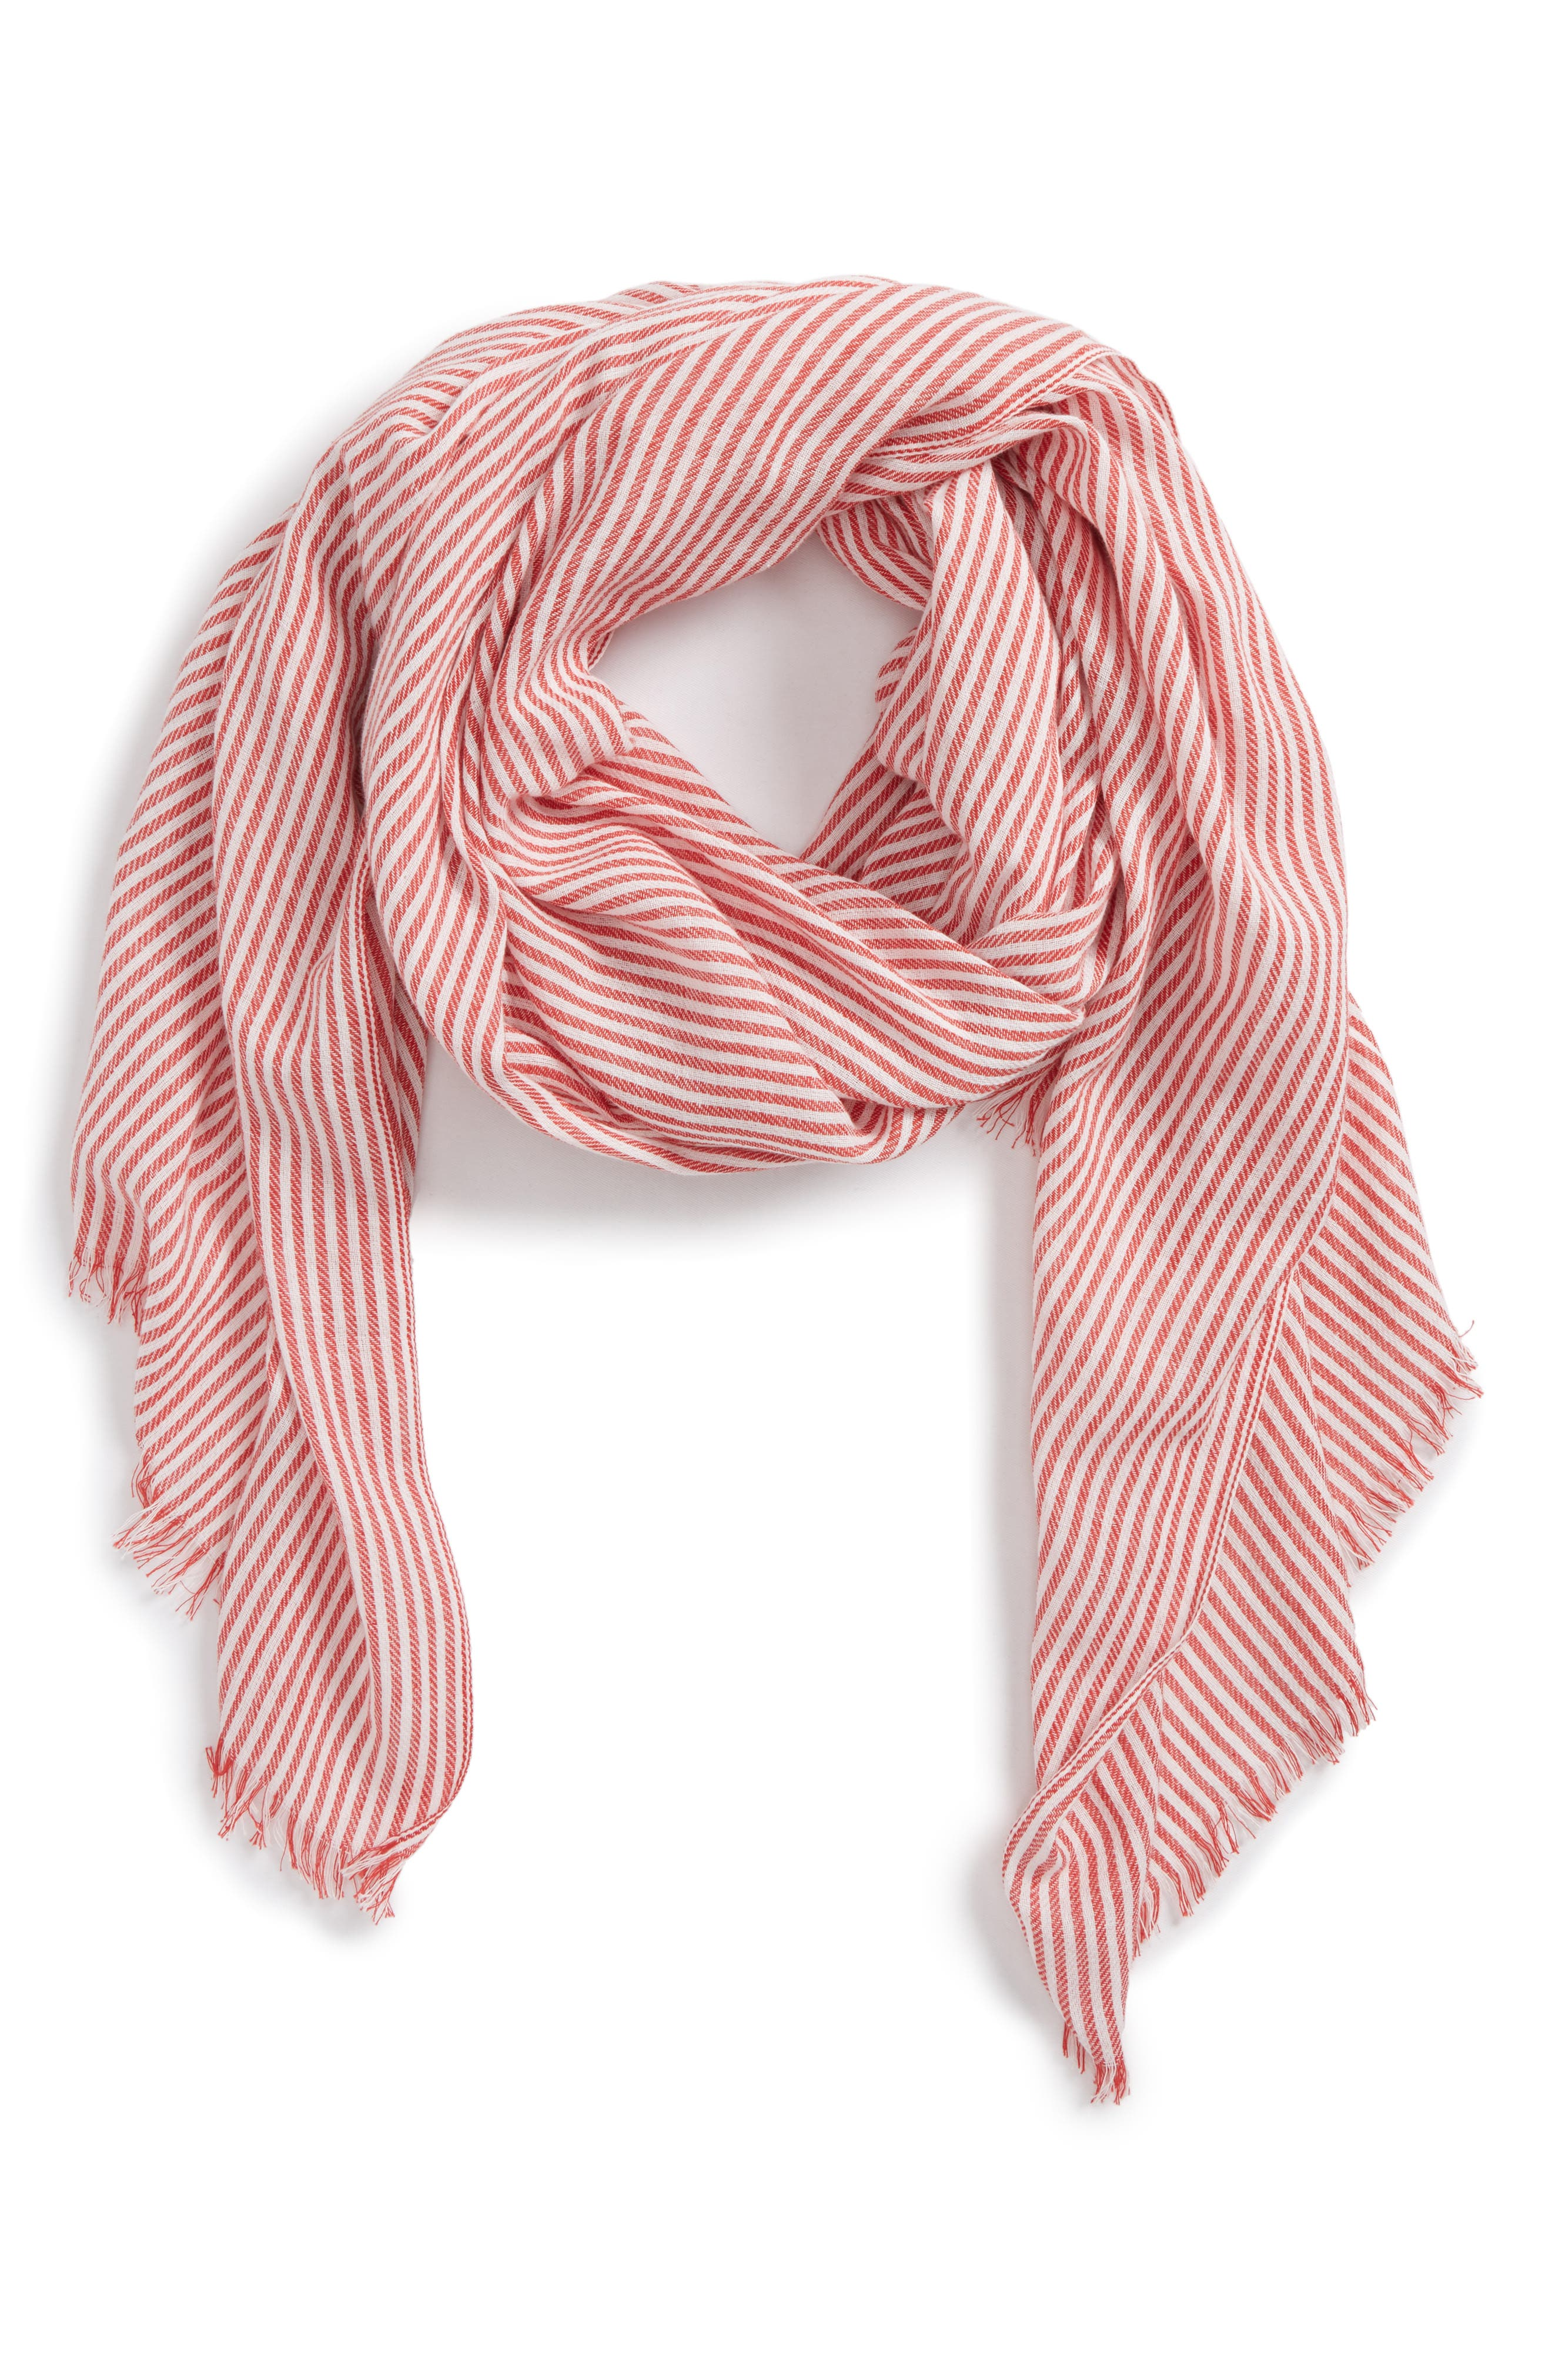 Engineer Stripe Scarf,                         Main,                         color, Red Multi